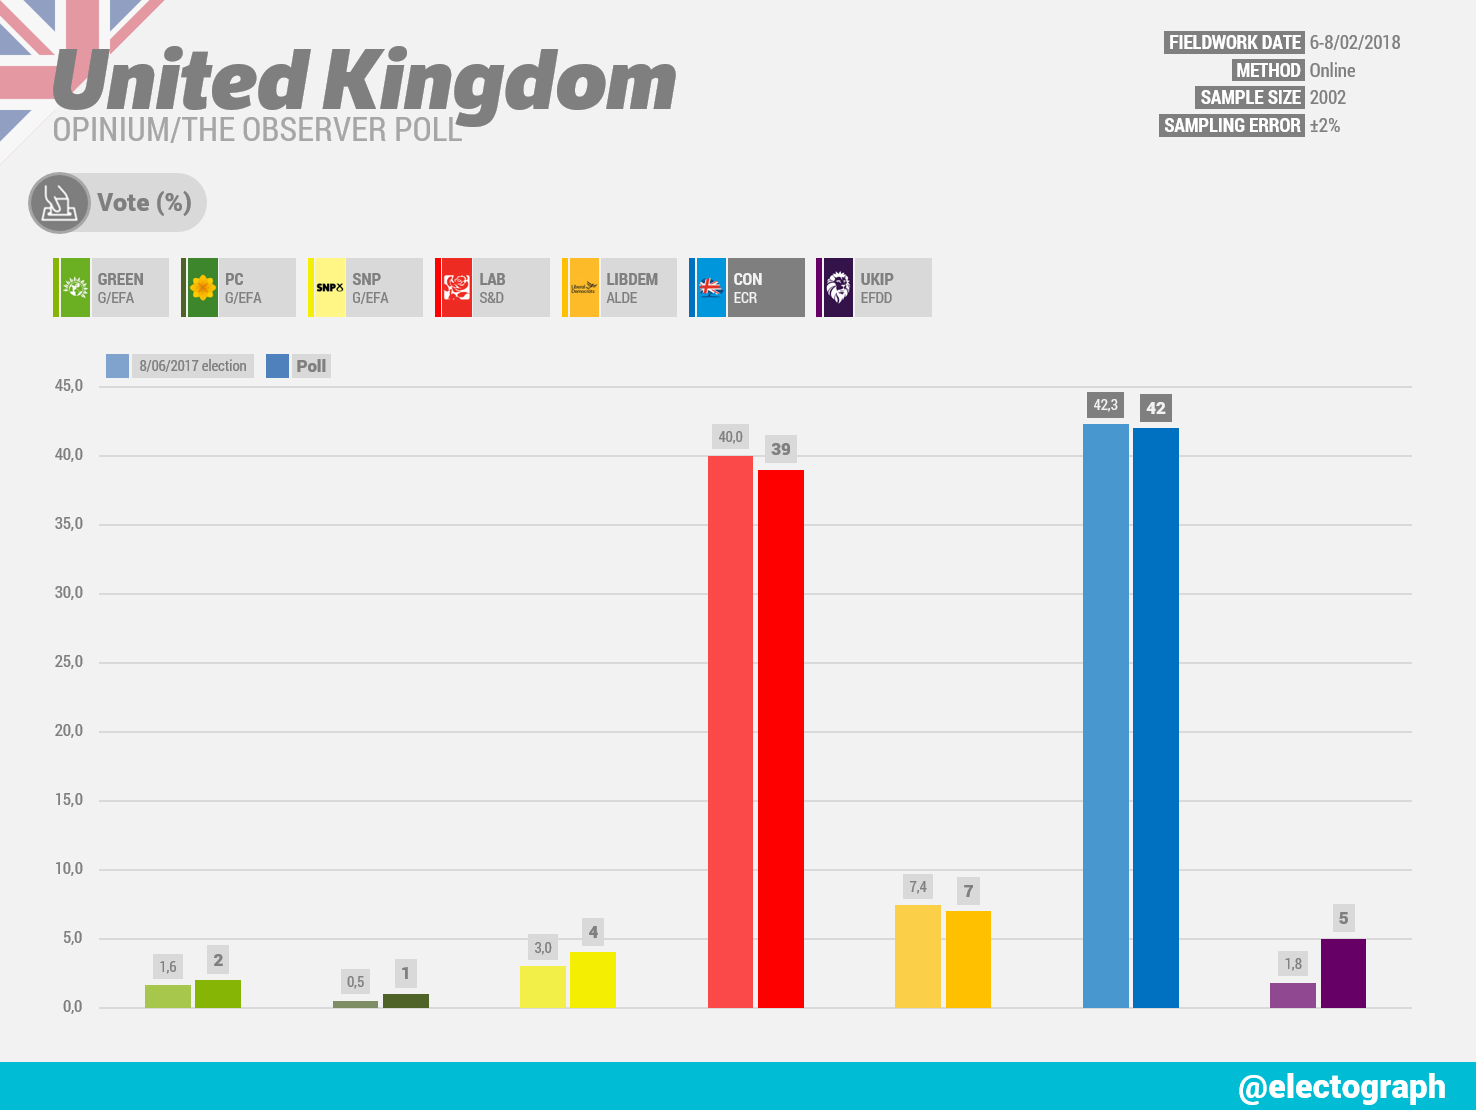 UNITED KINGDOM Opinium poll chart for The Observer, February 2018